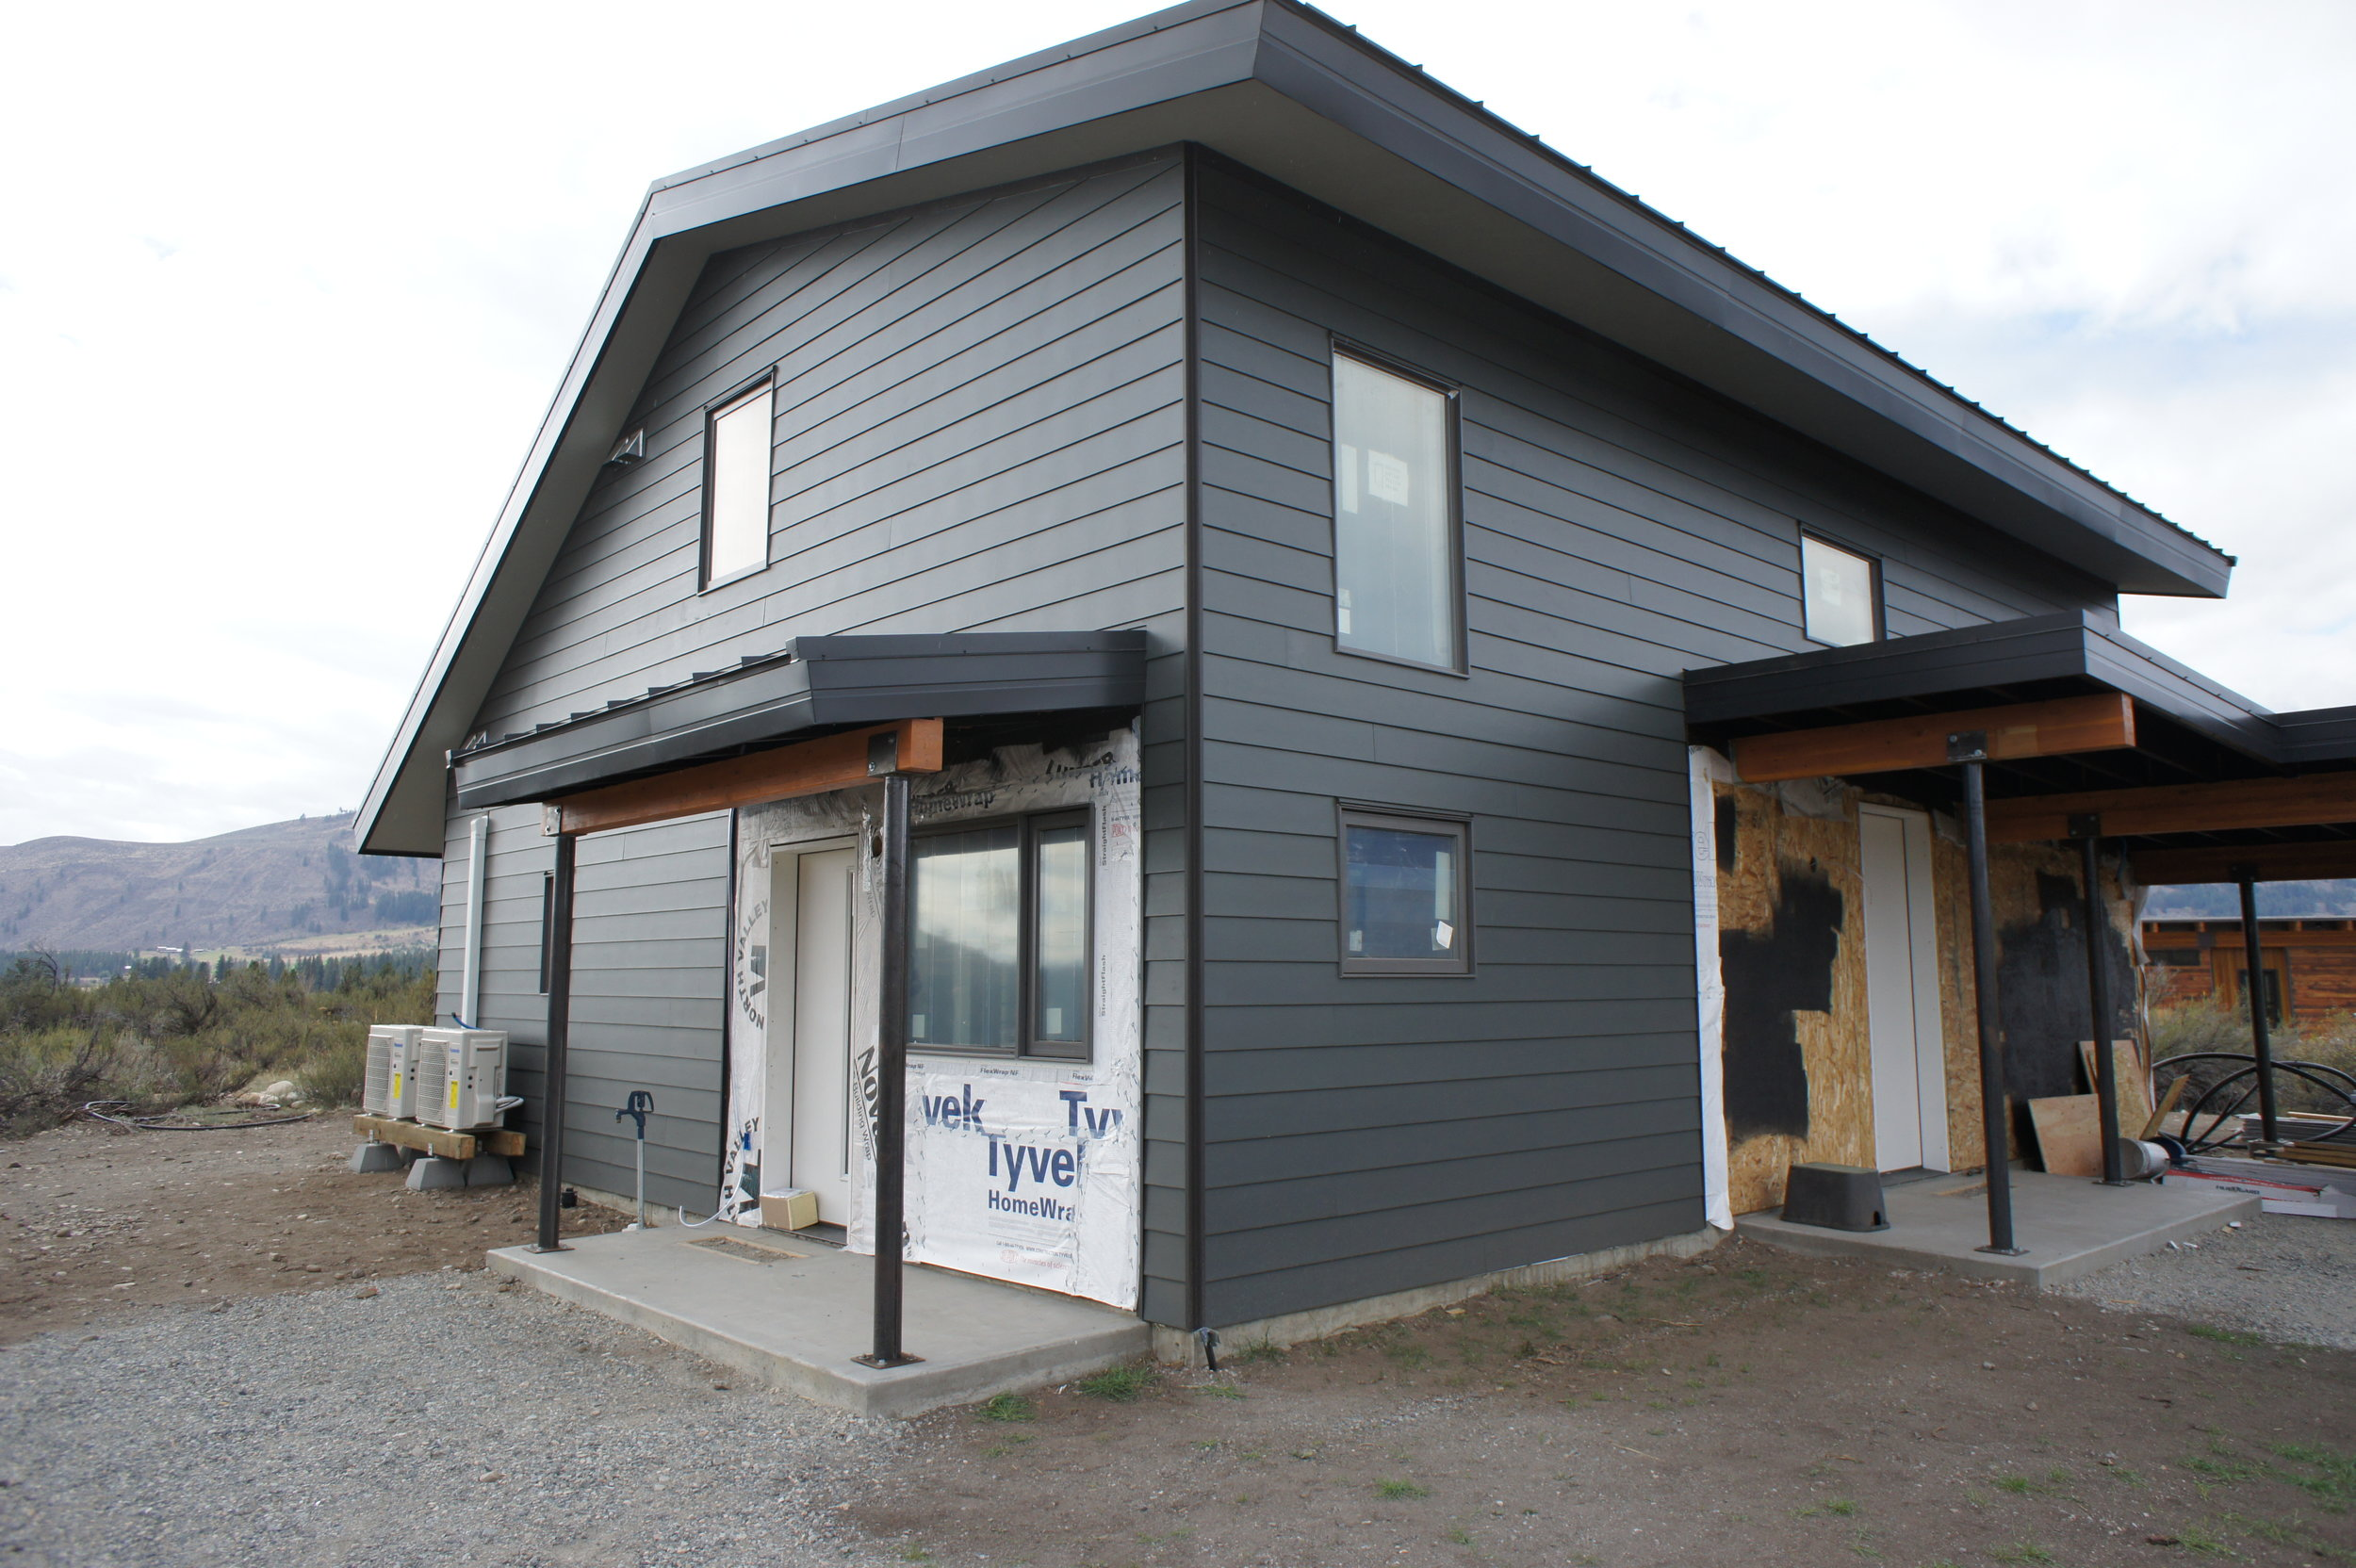 The siding is Hardie Plank, a fibercement, fire-resistant product.